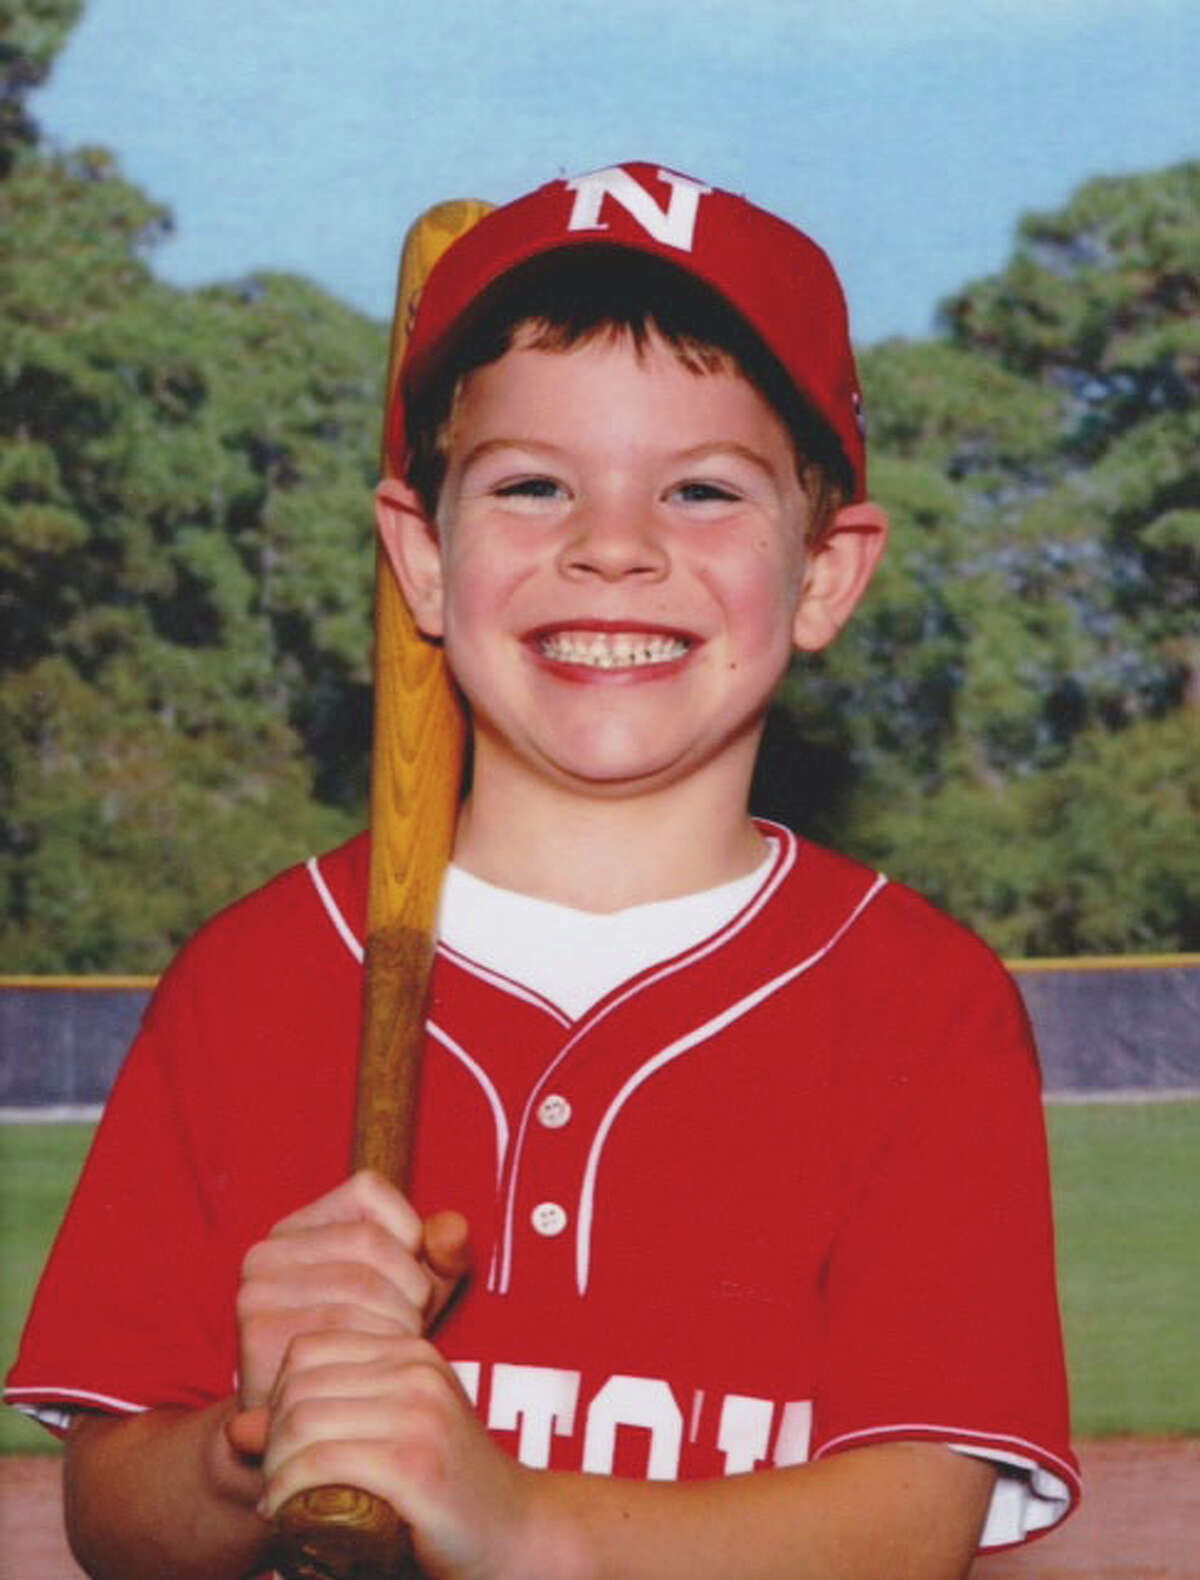 Jack Pinto died in the Sandy Hook Elementary School shooting in Newtown, Conn. on Friday, Dec. 14, 2012.